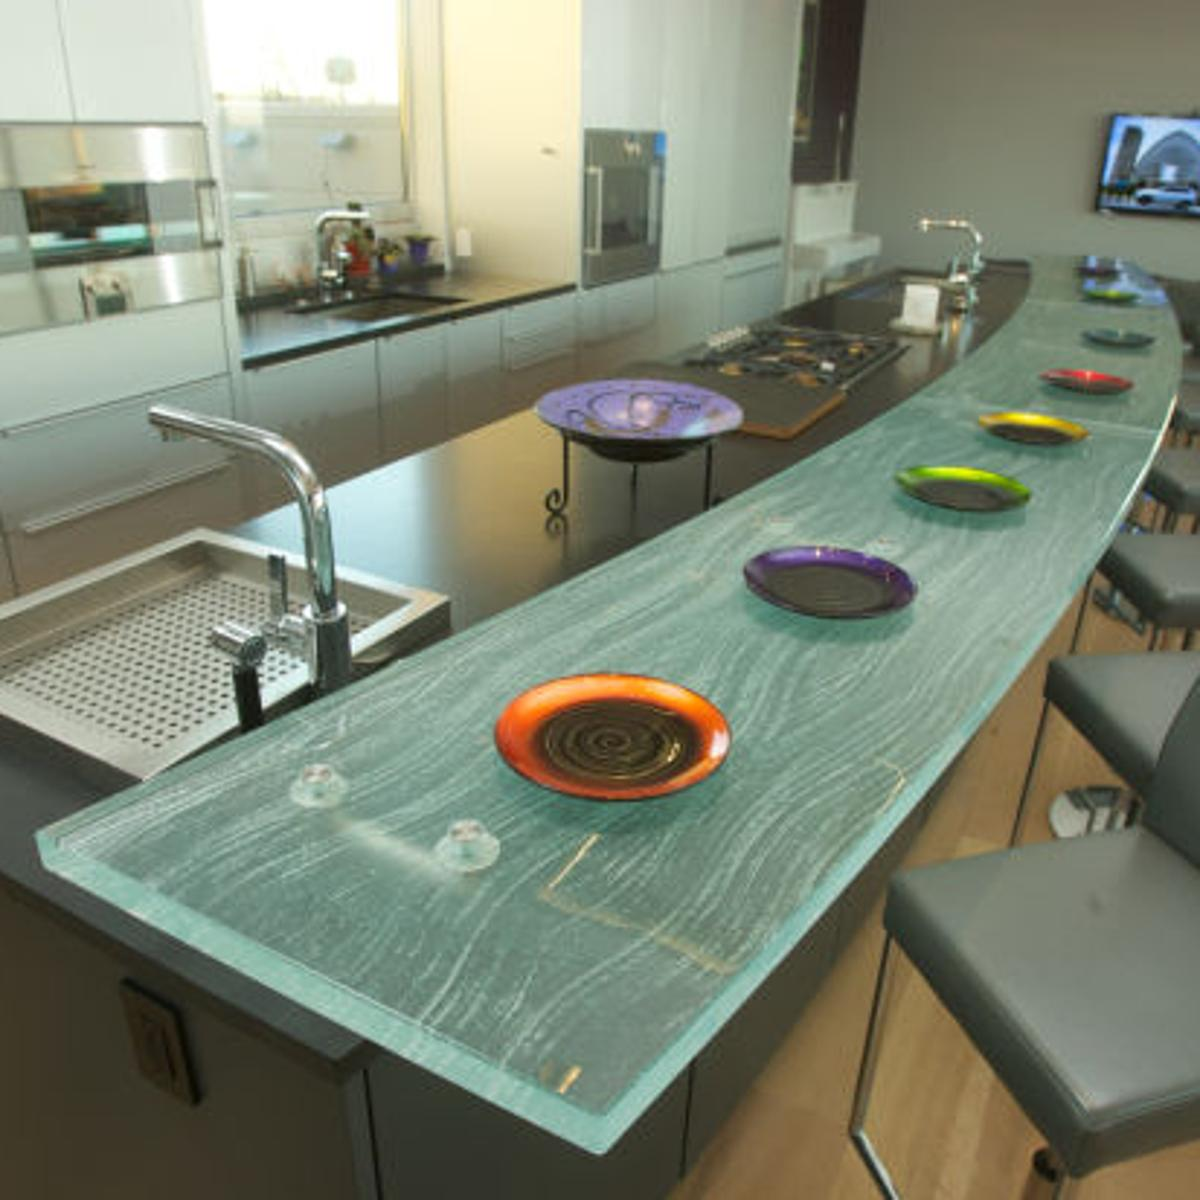 Clean Slate Kitchen Trends To Watch In 2015 Shore